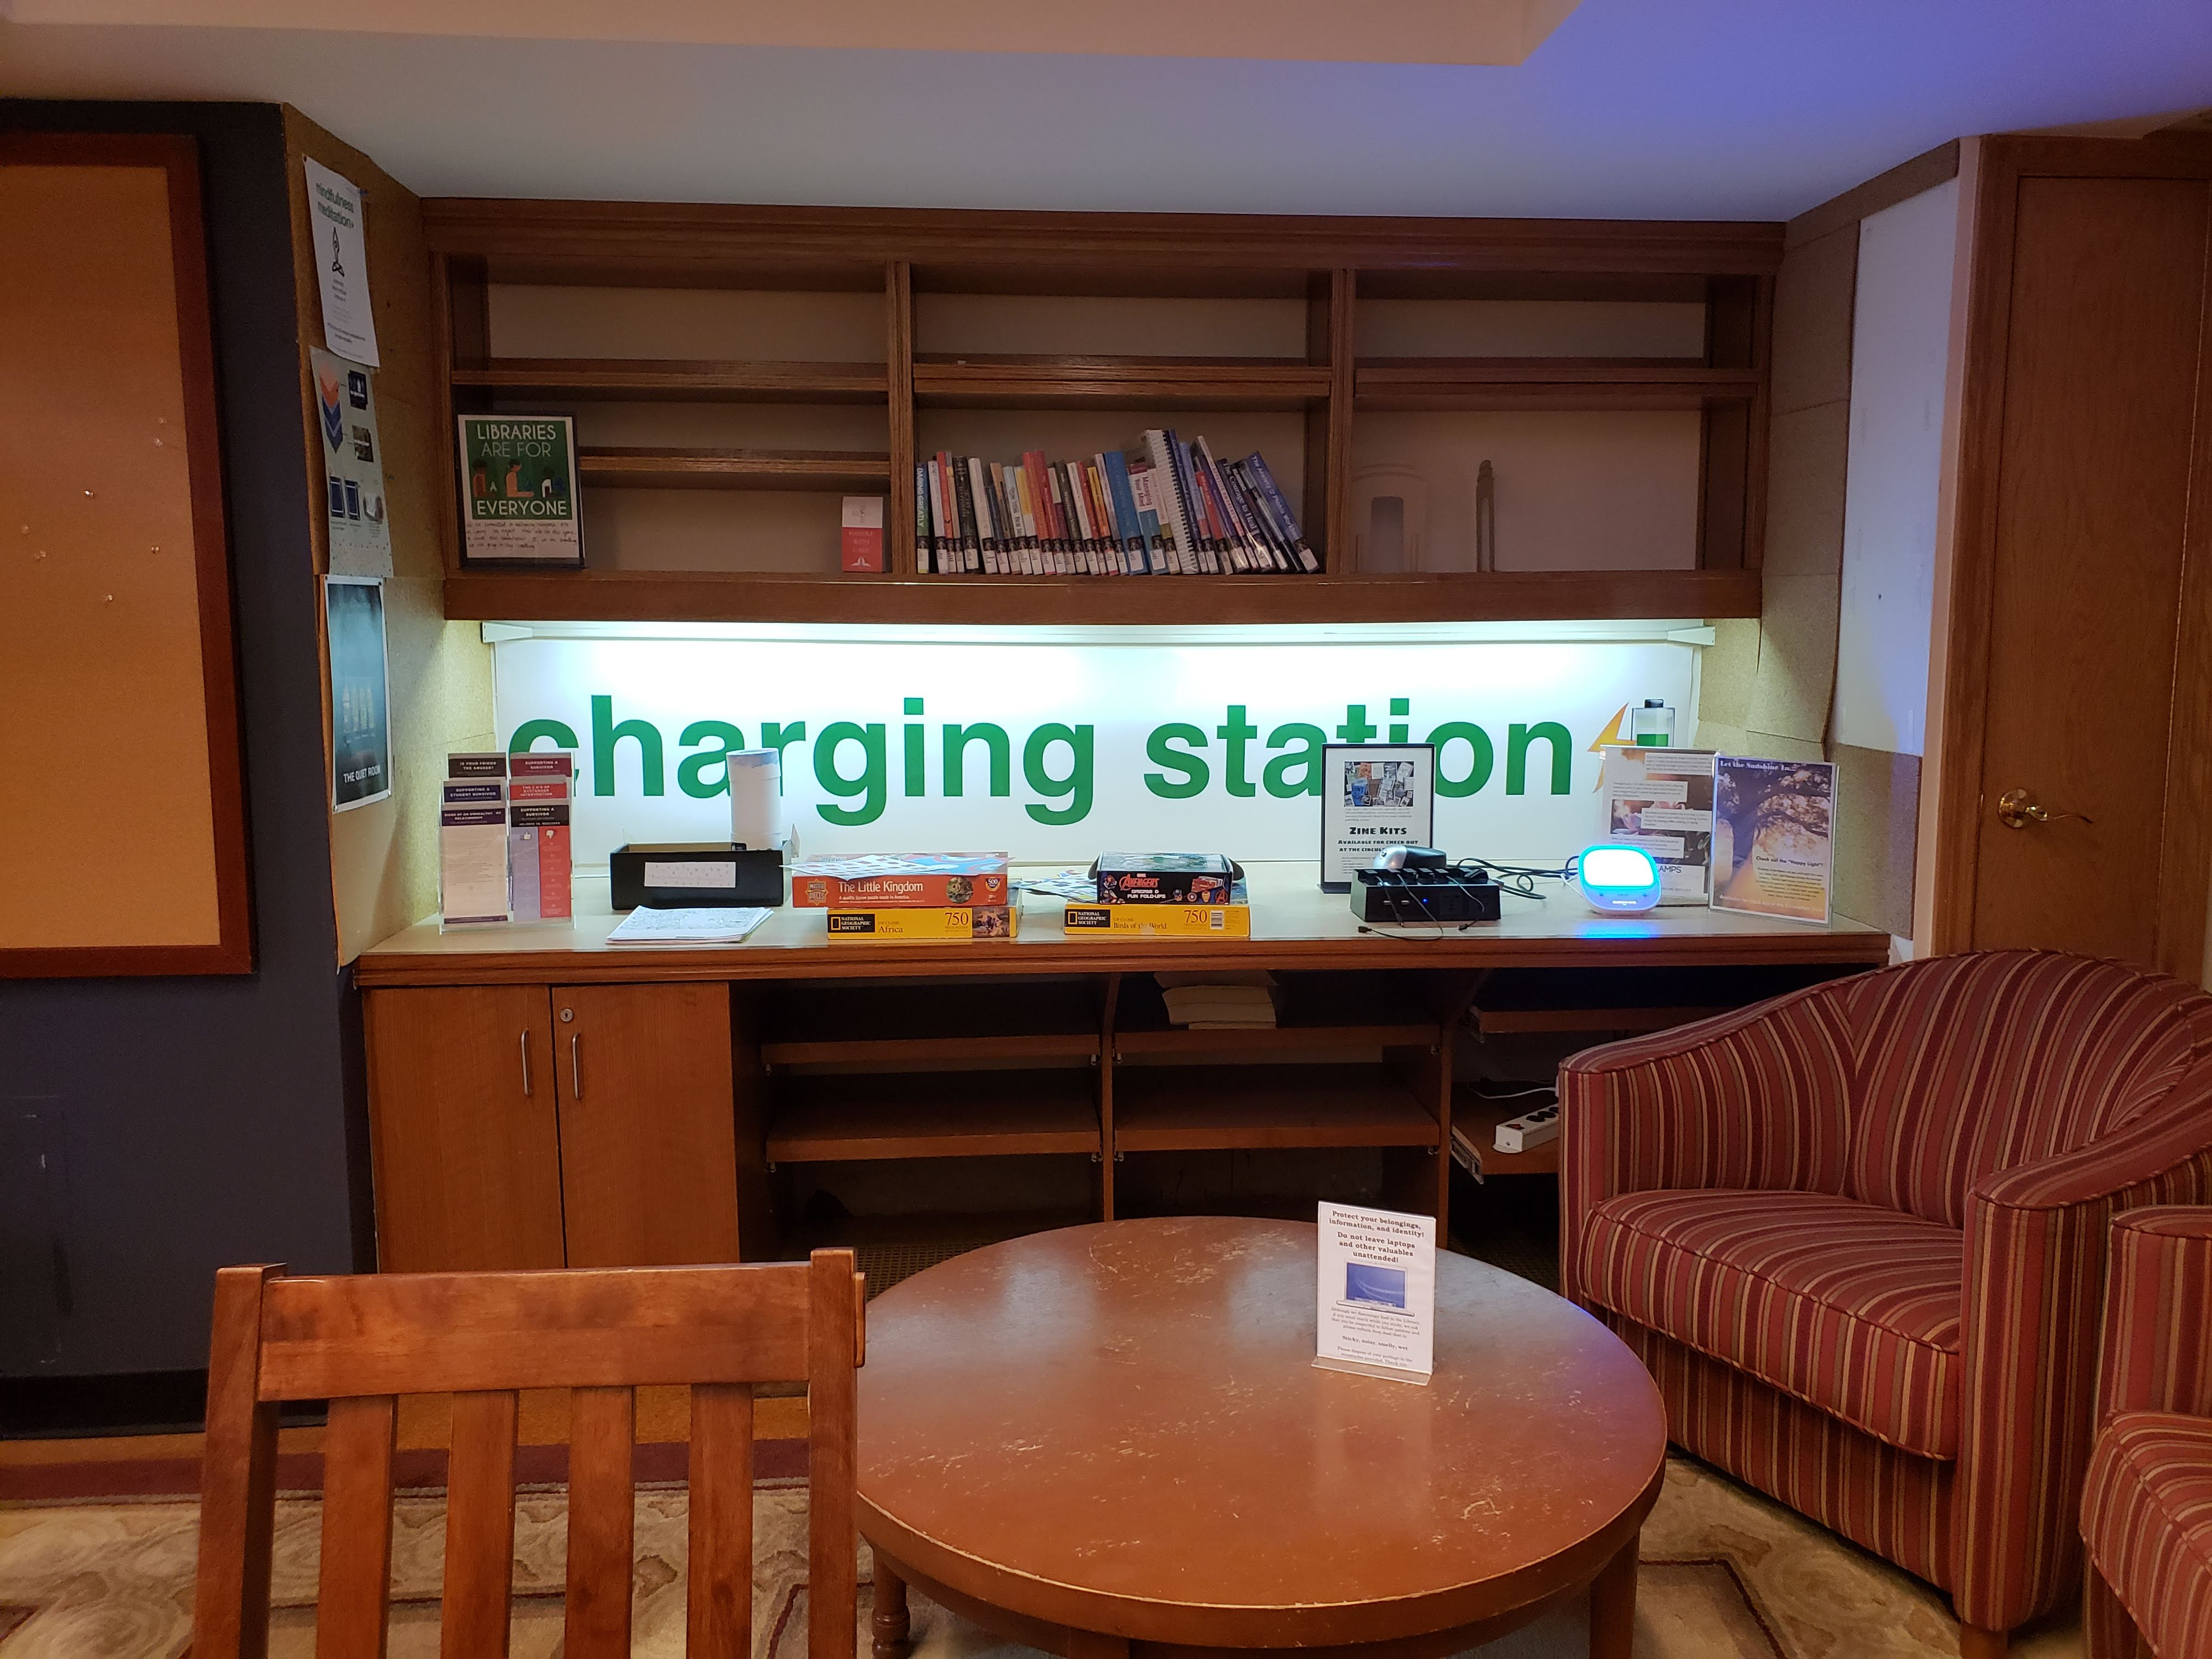 Charging stations!